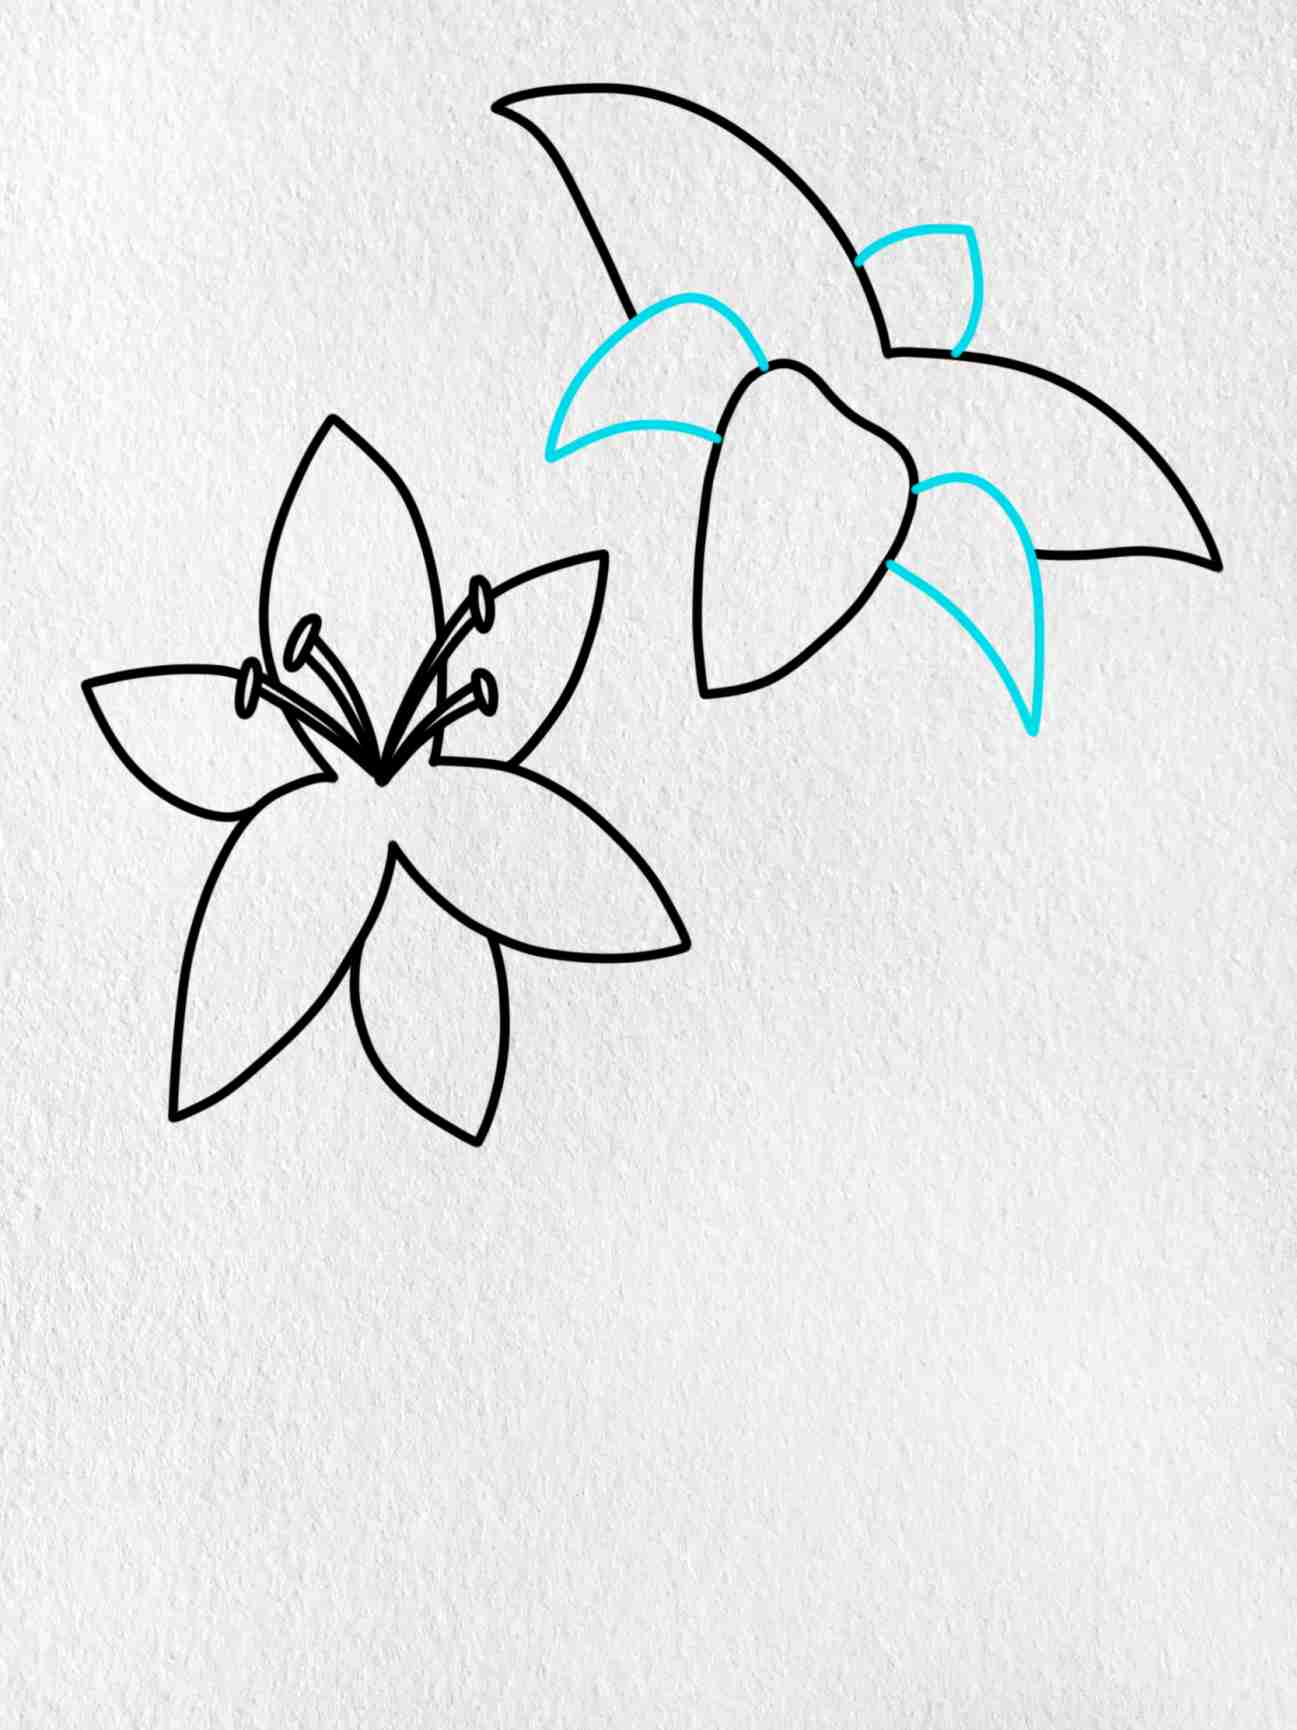 How To Draw A Lily: Step 5